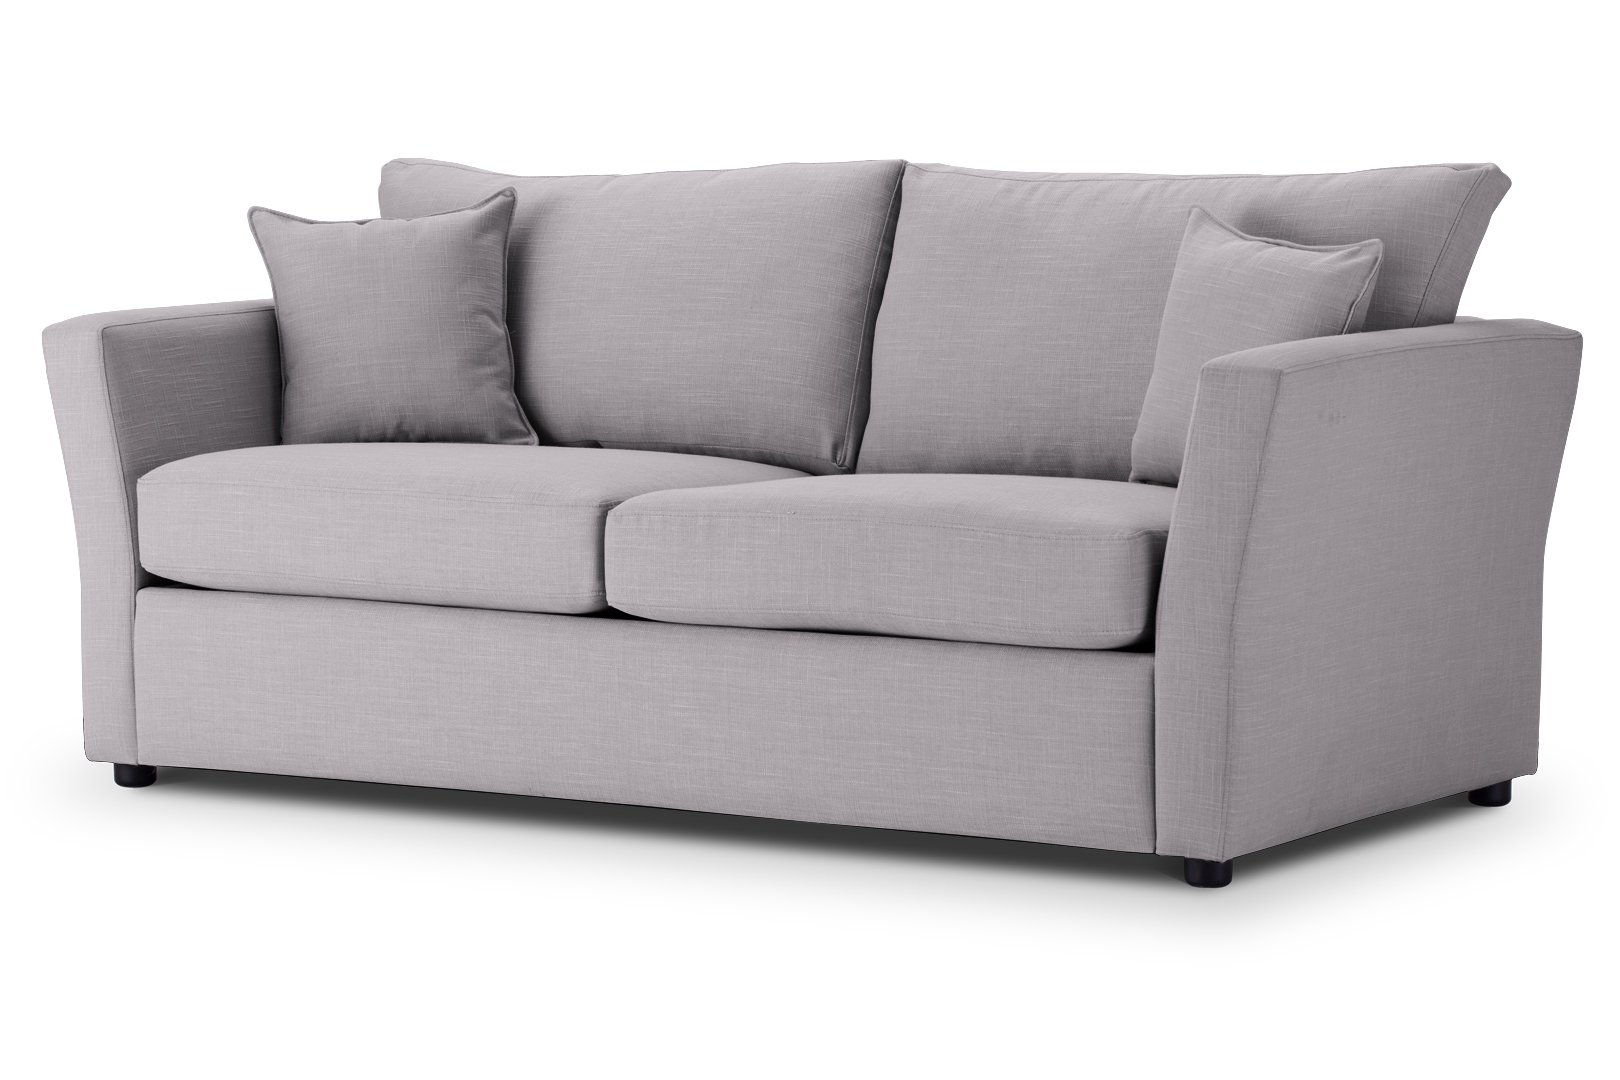 SOFA BED Flared Arm in Emporio Silver